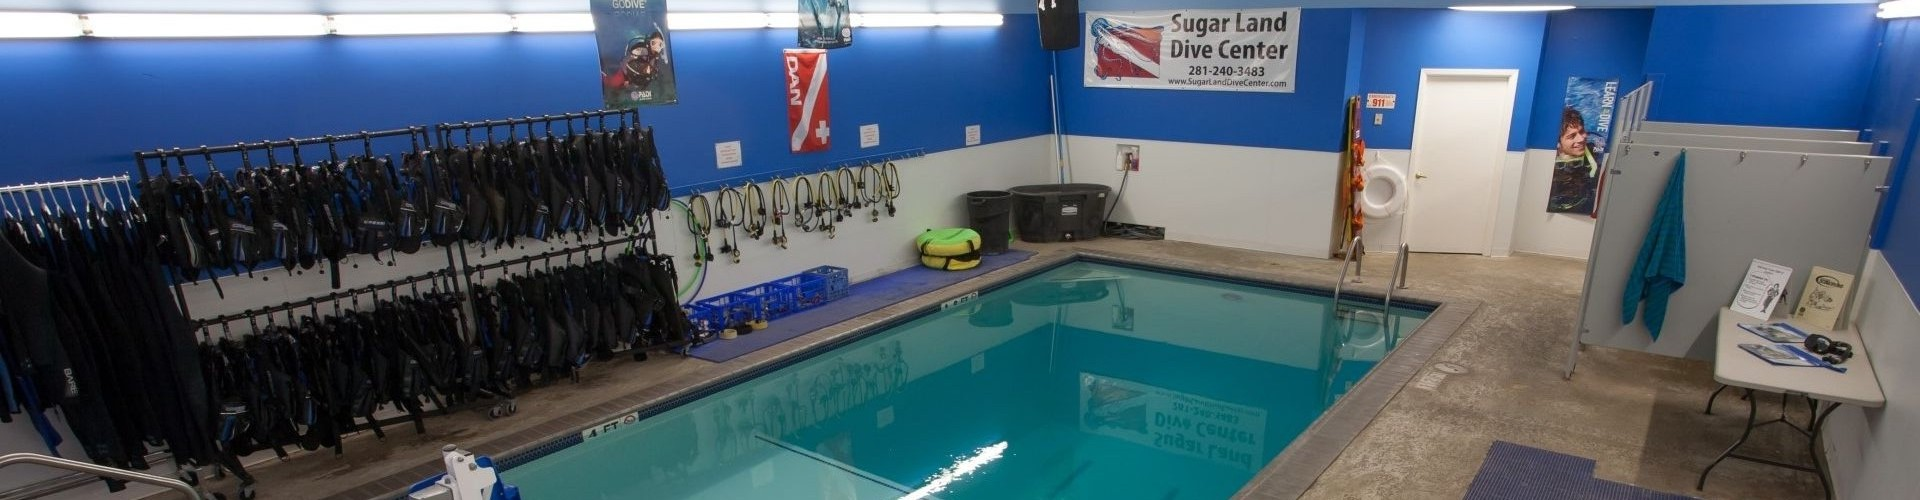 Sugar Land Dive Center Pool